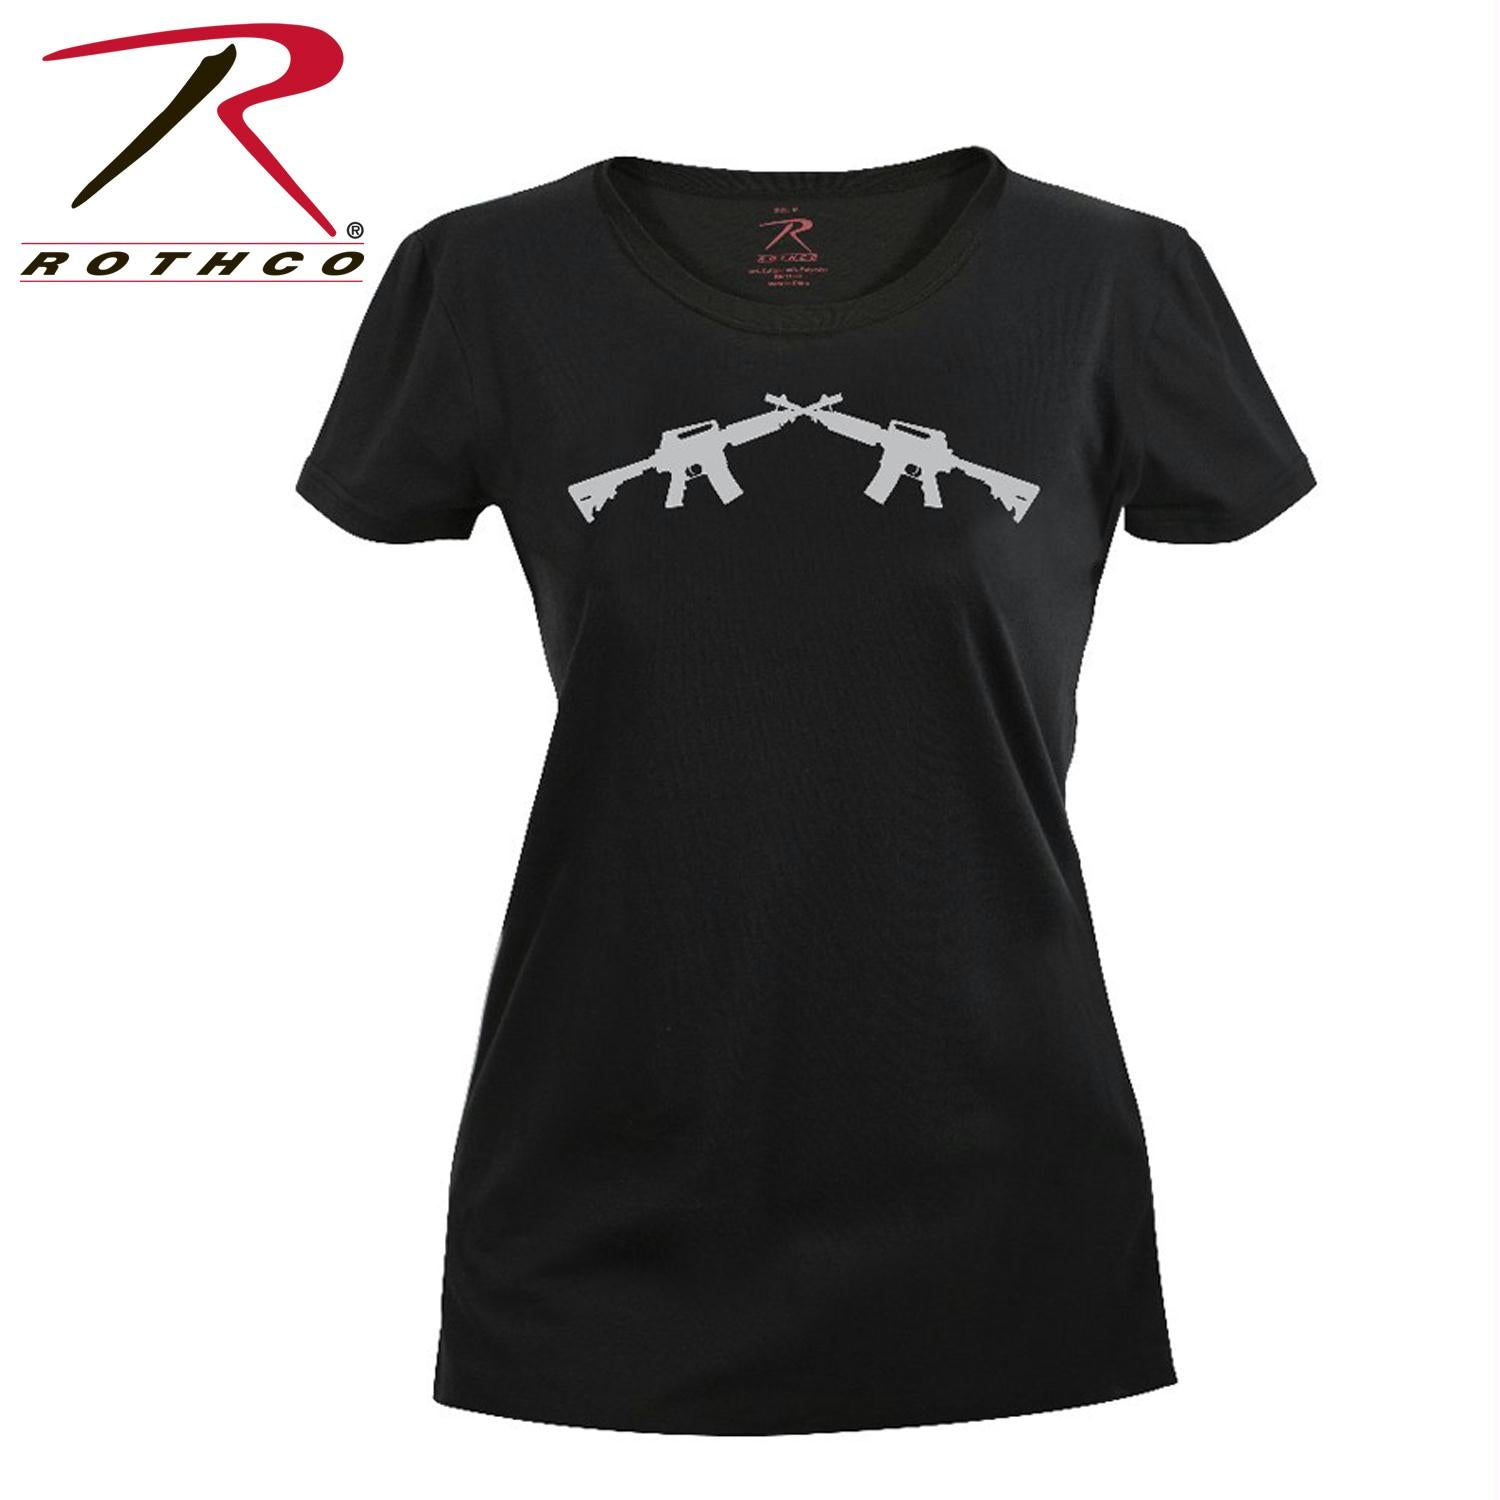 Rothco Women's Crossed Rifle Long Length T-Shirt - S